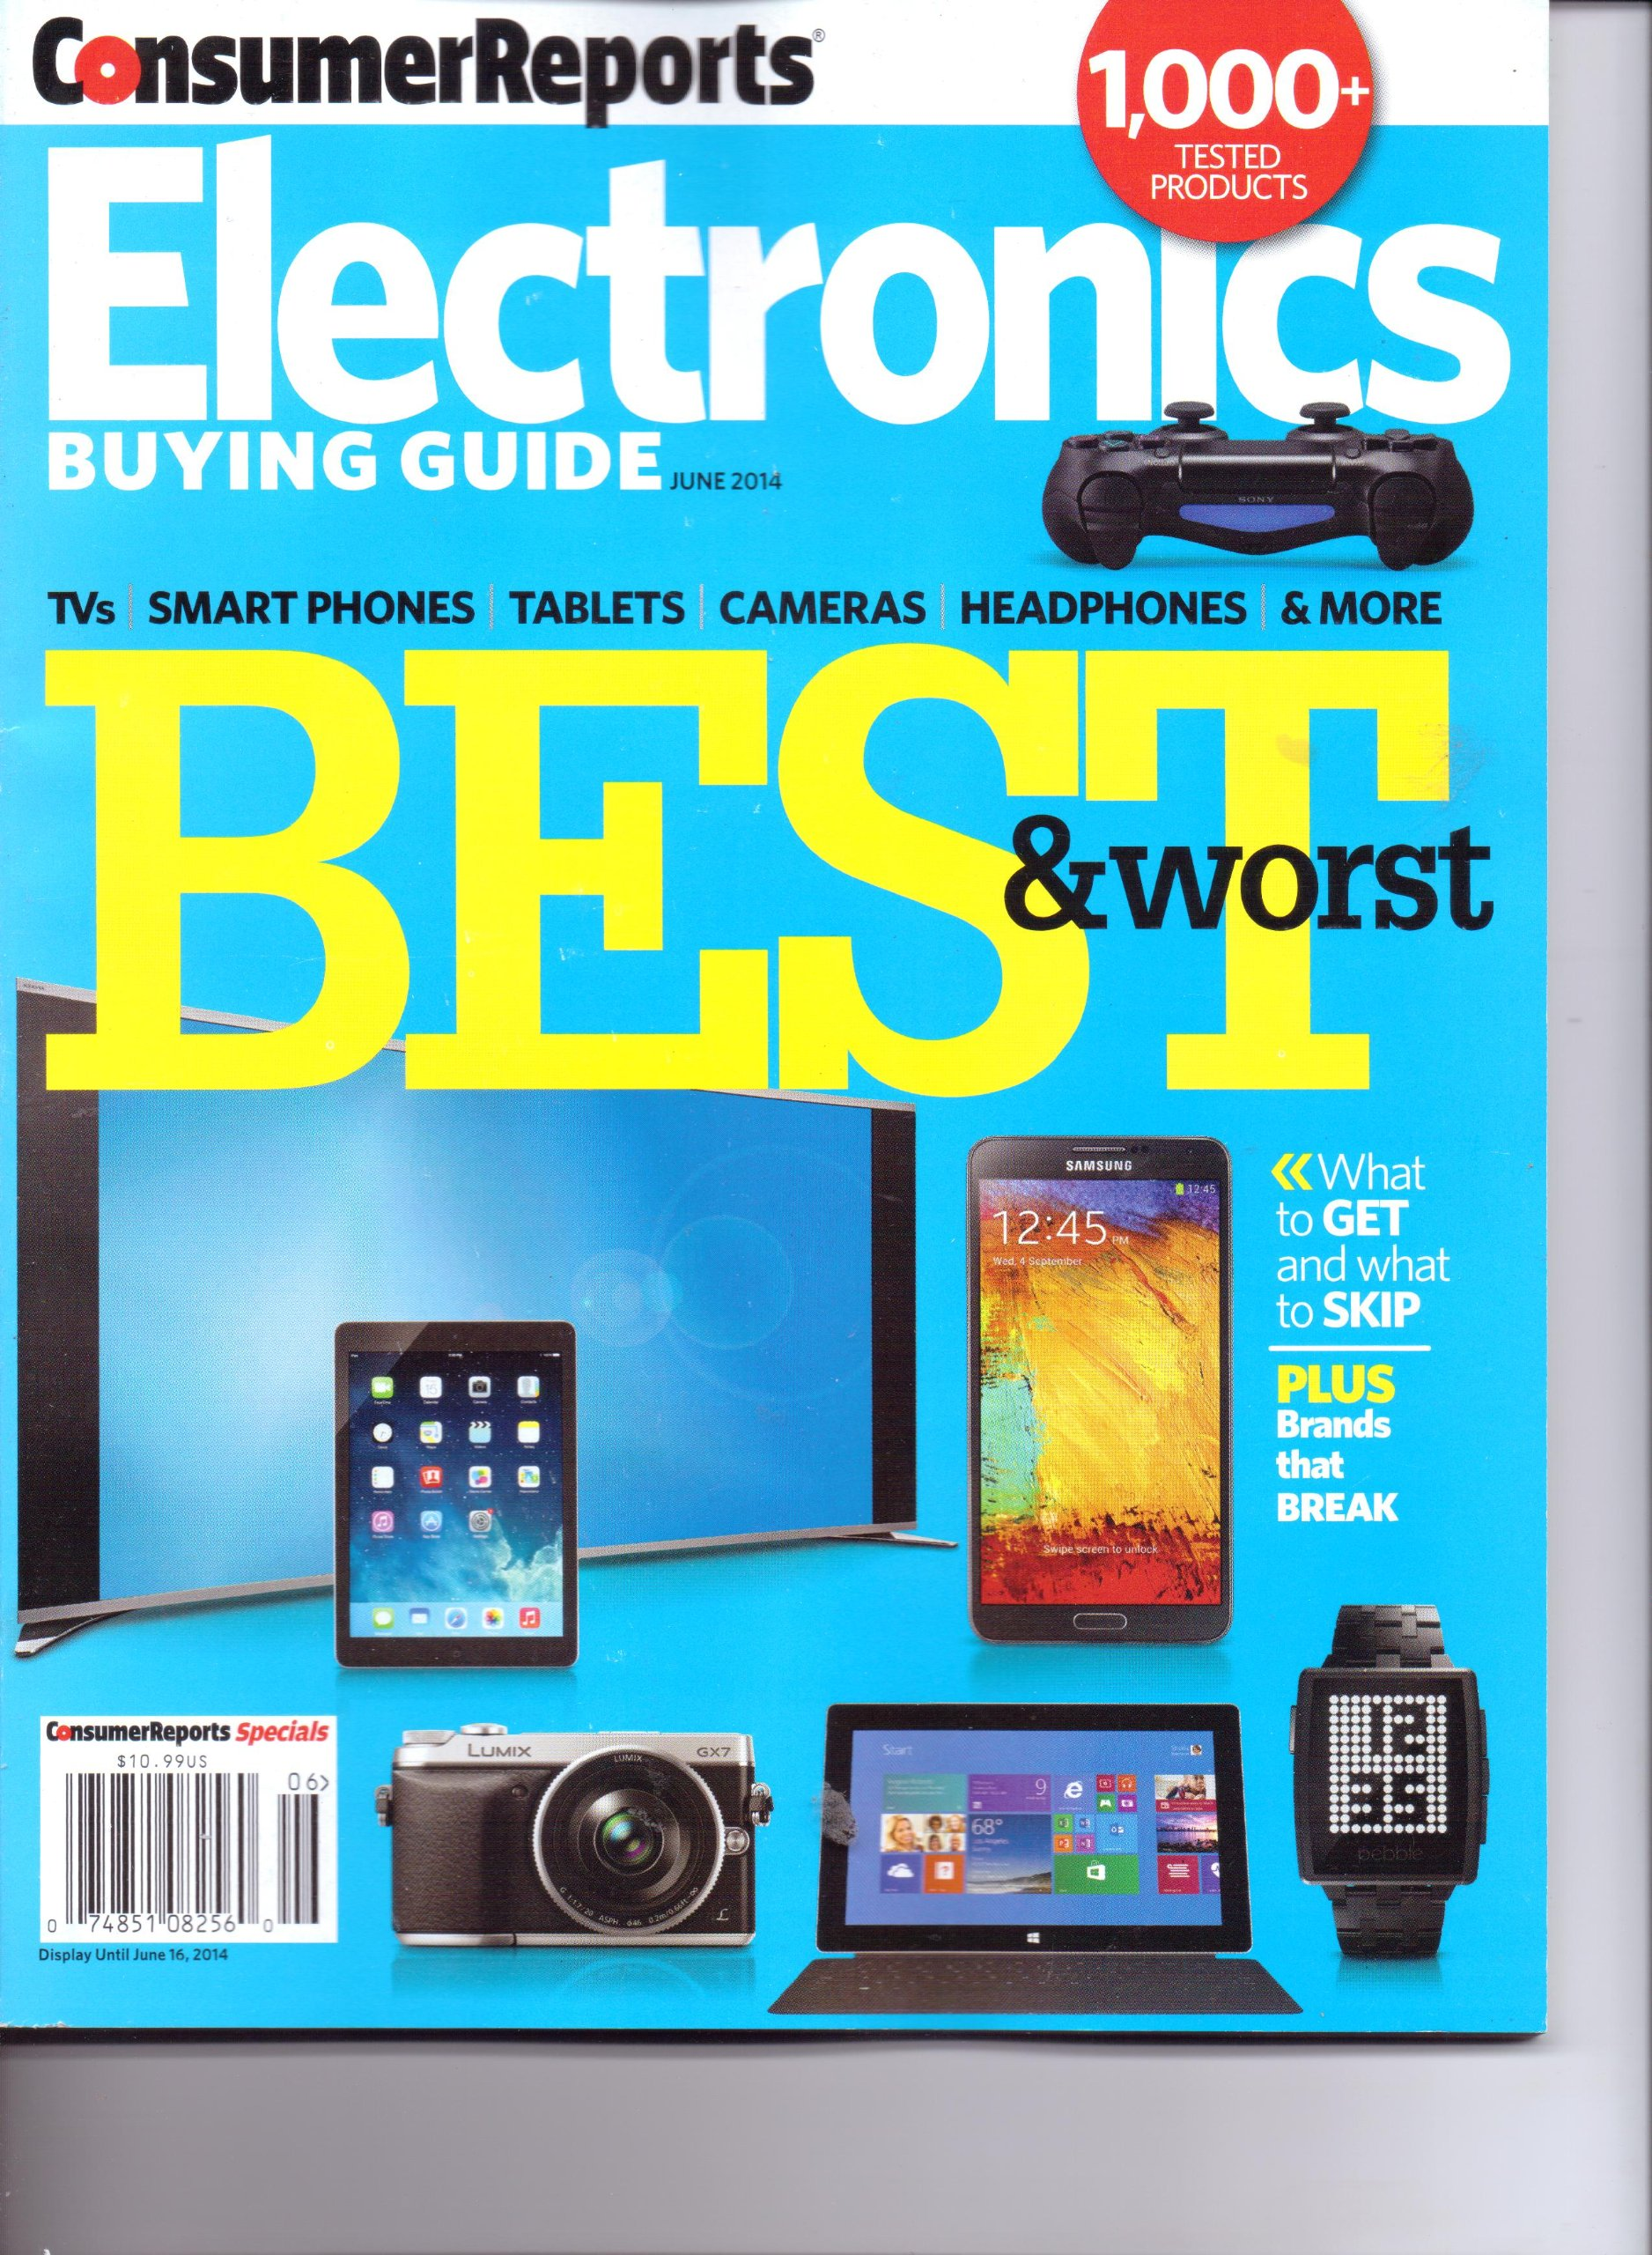 Consumer Reports - ELECTRONICS BUYING GUIDE - Best & Worst. June 2014.:  Various: Amazon.com: Books